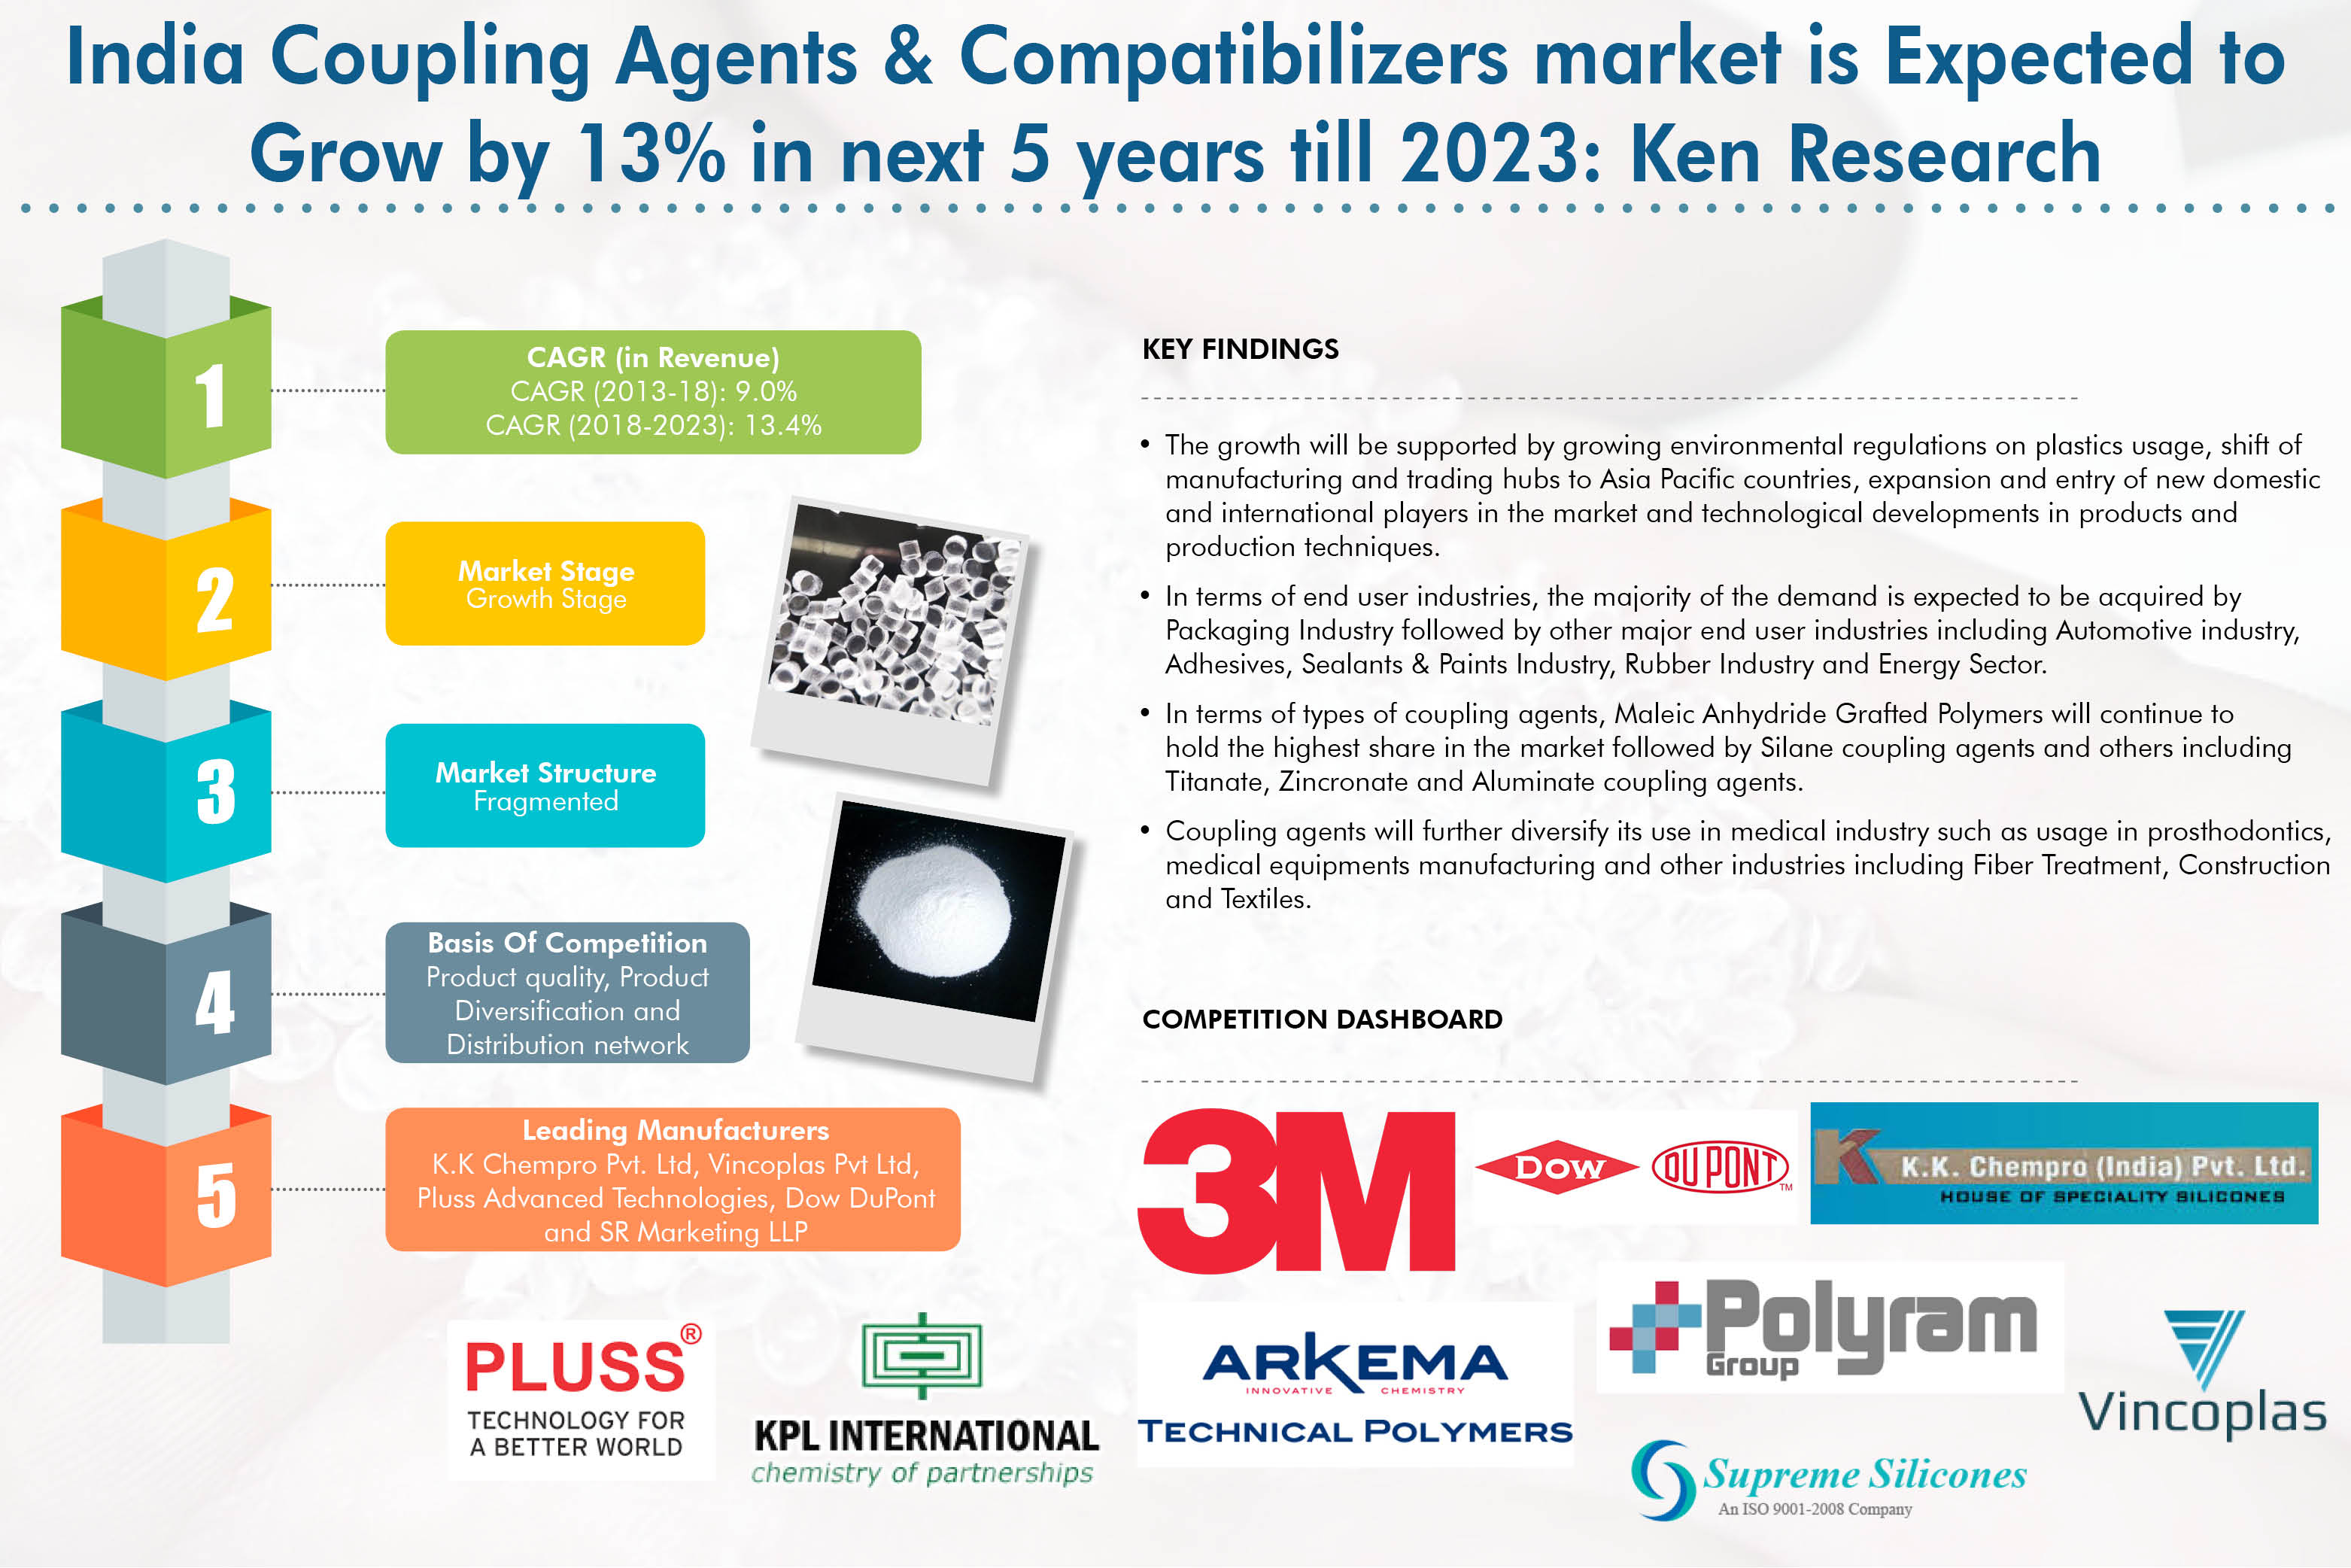 India Coupling Agents & Compatibilizers Market